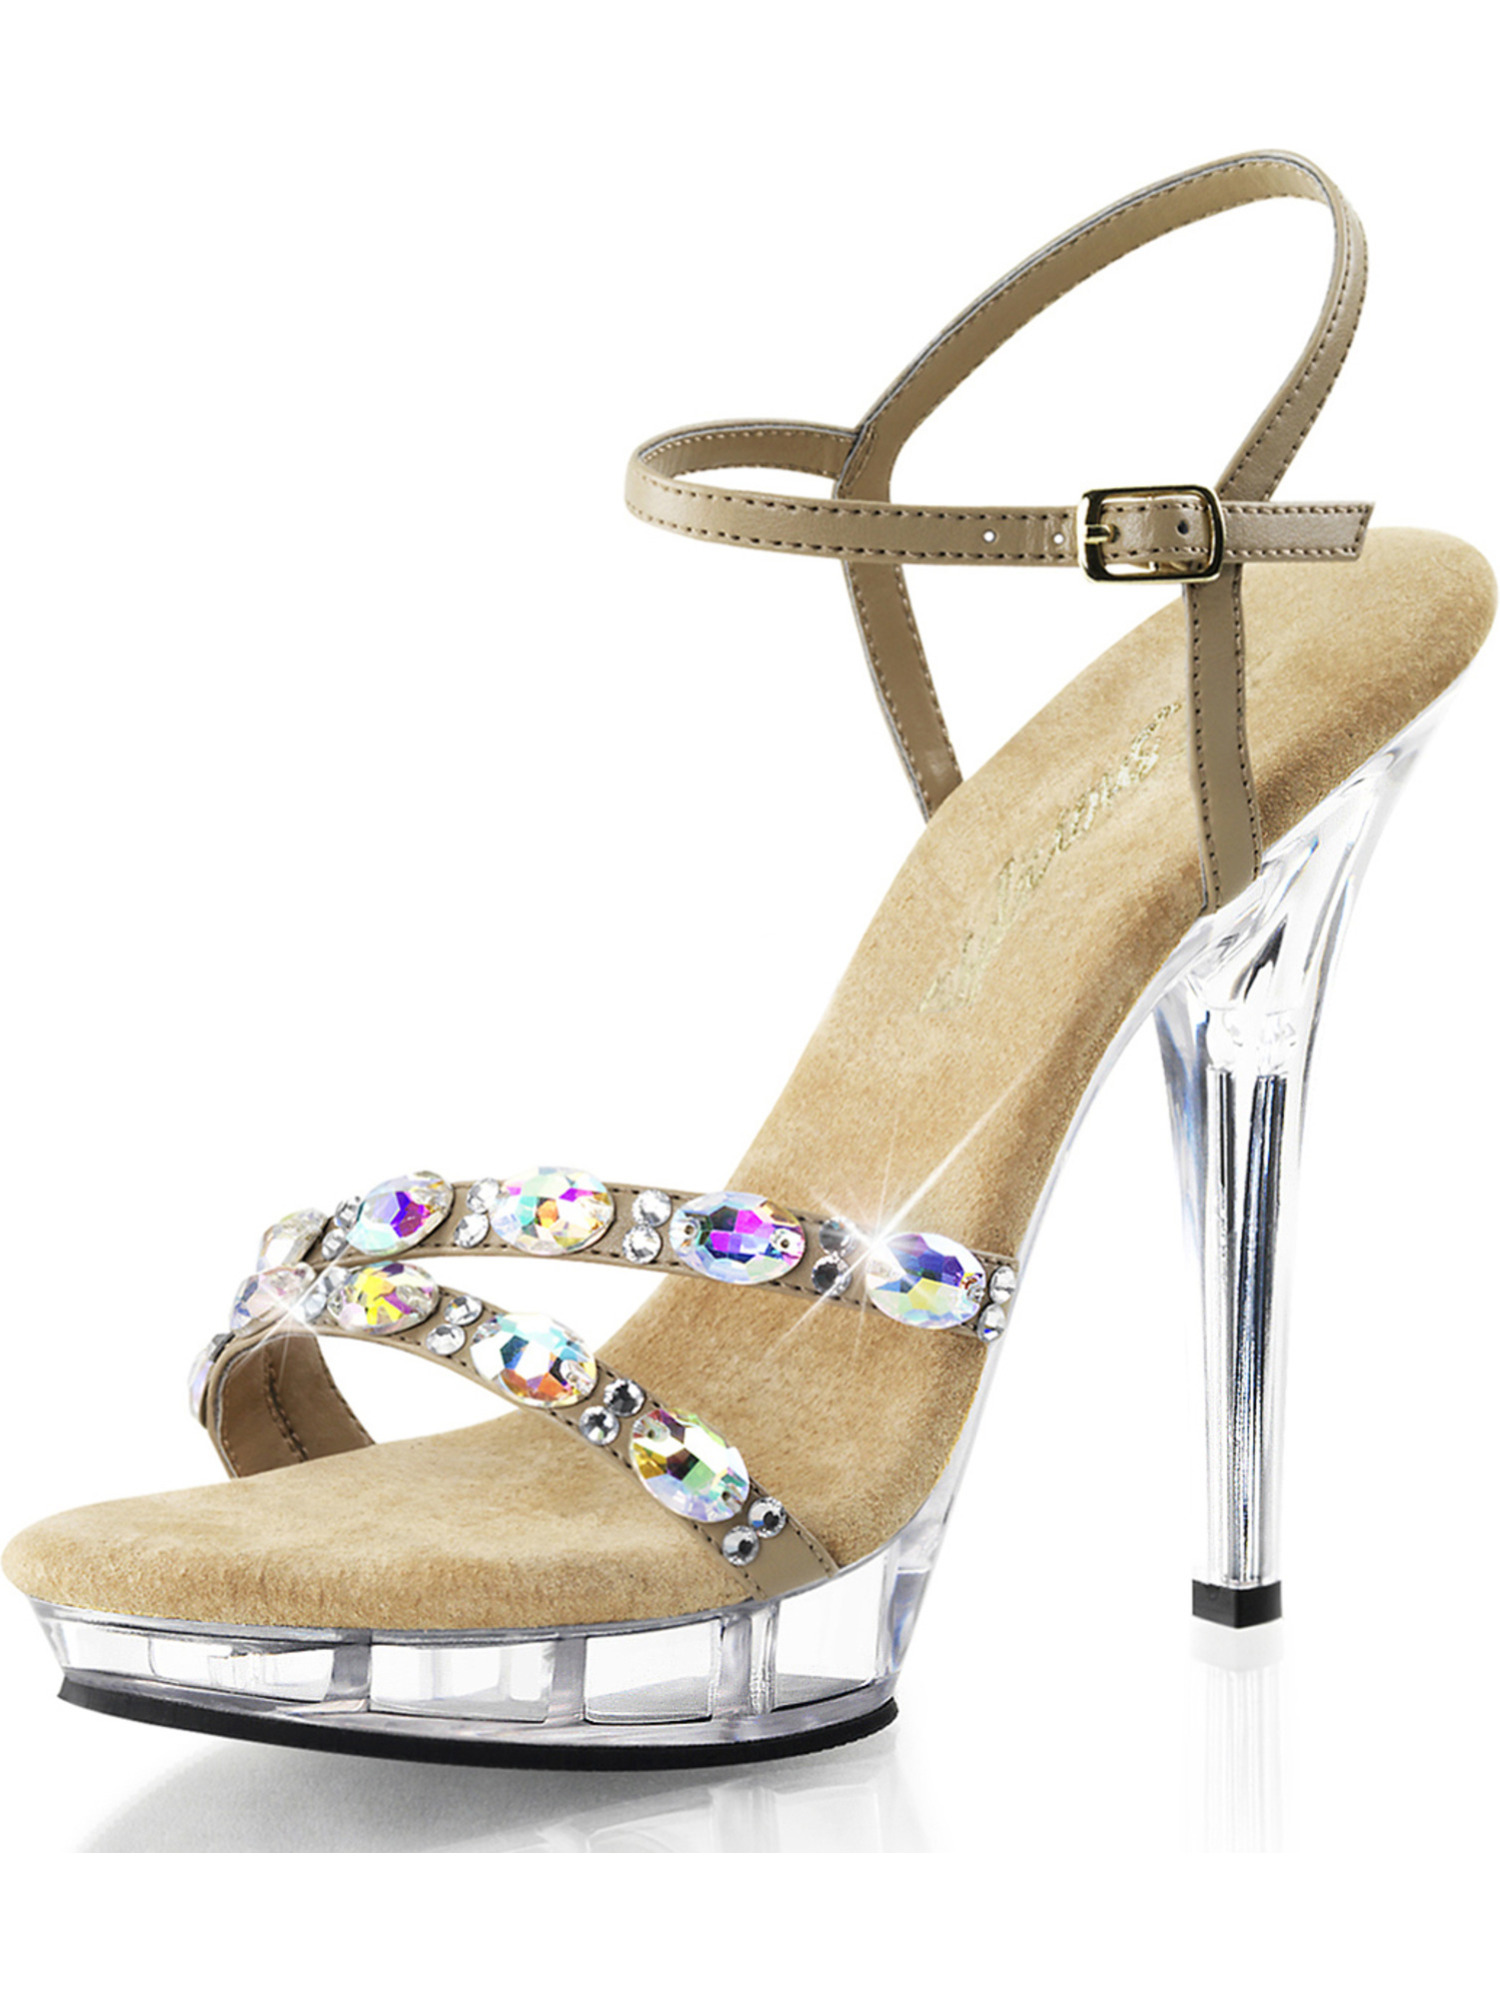 Womens Taupe Dress Shoes Ankle Strap Sandals Rhinestone Clear 5 Inch Heels